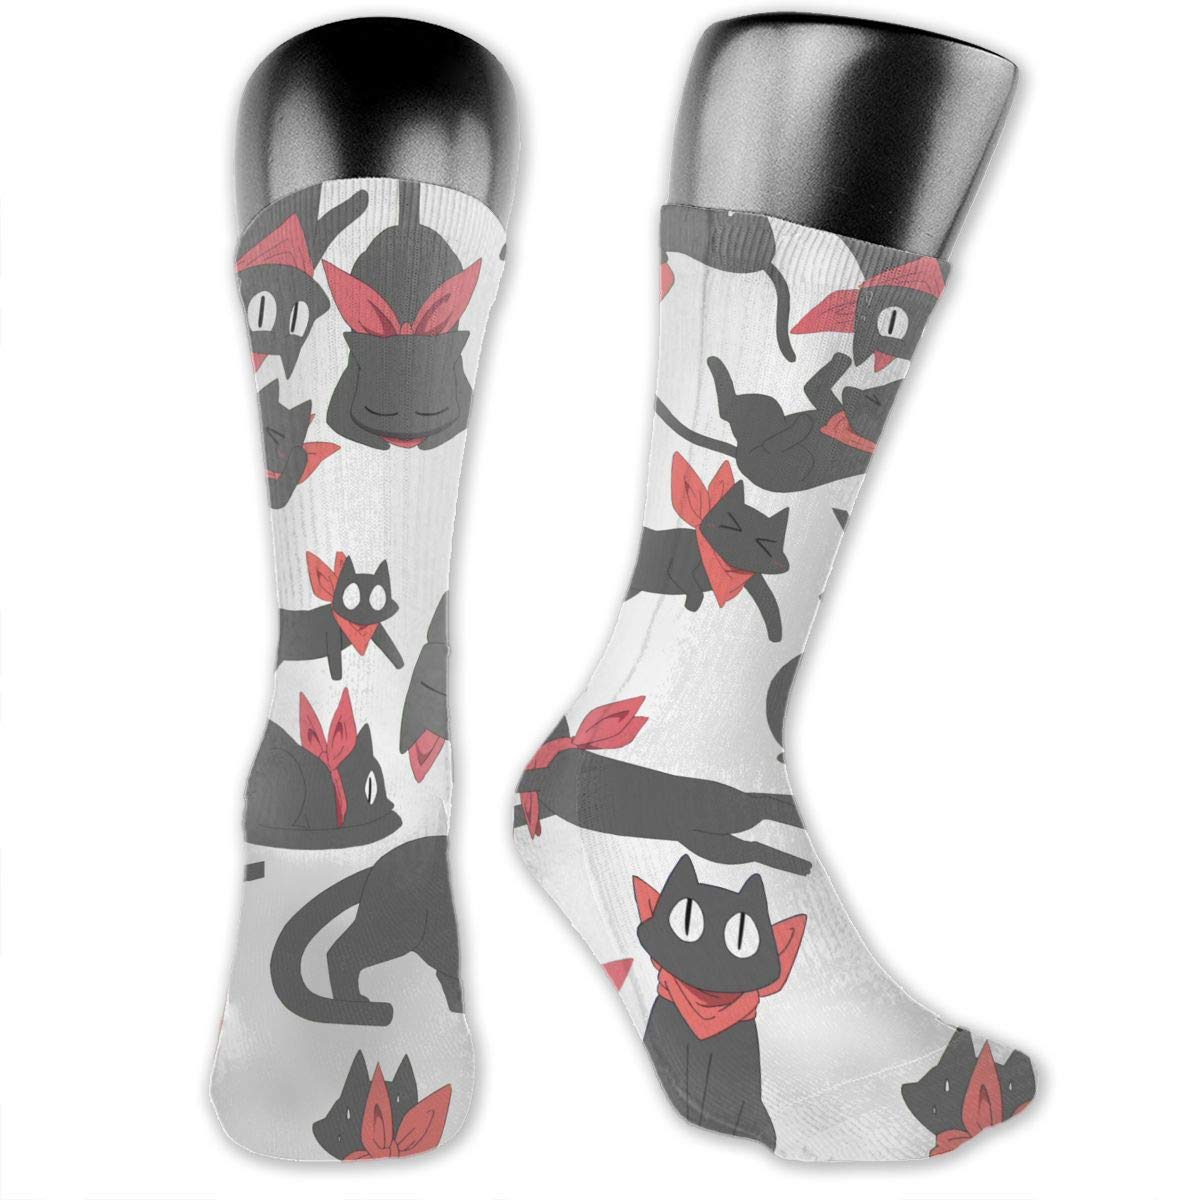 OLGCZM Sakamoto Cat Men Womens Thin High Ankle Casual Socks Fit Outdoor Hiking Trail